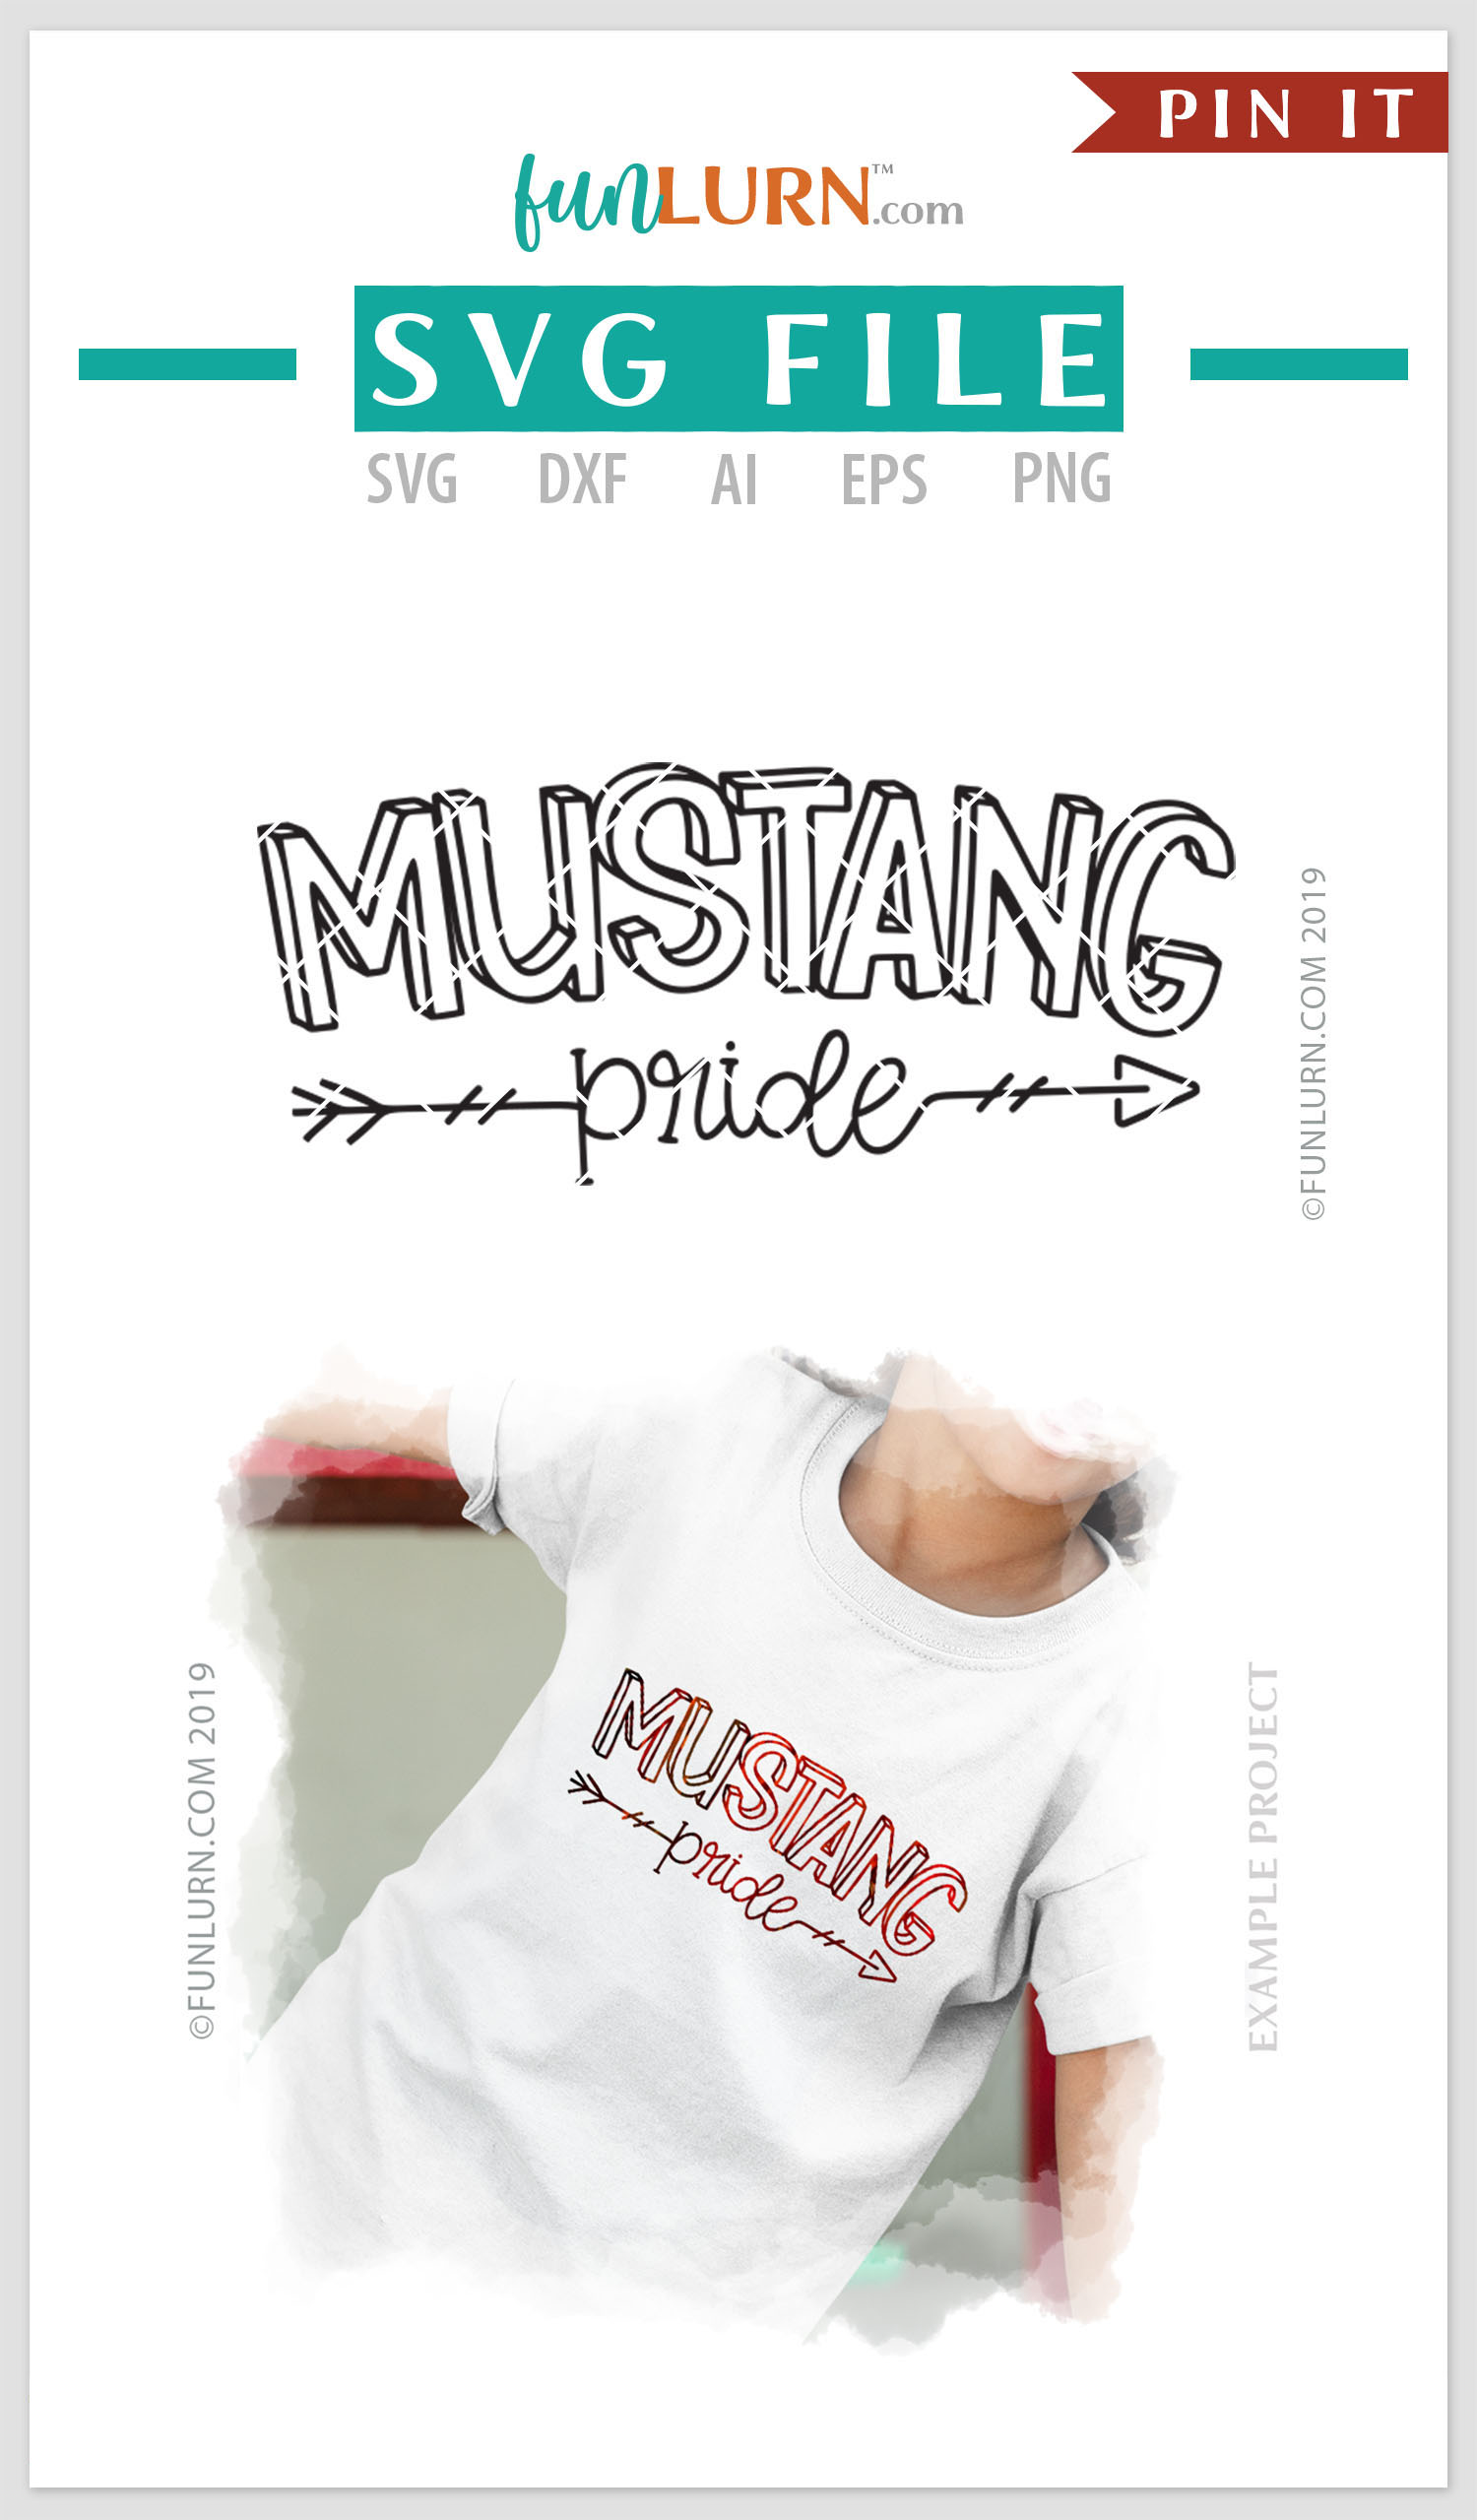 Mustang Pride Team SVG Cut File example image 4